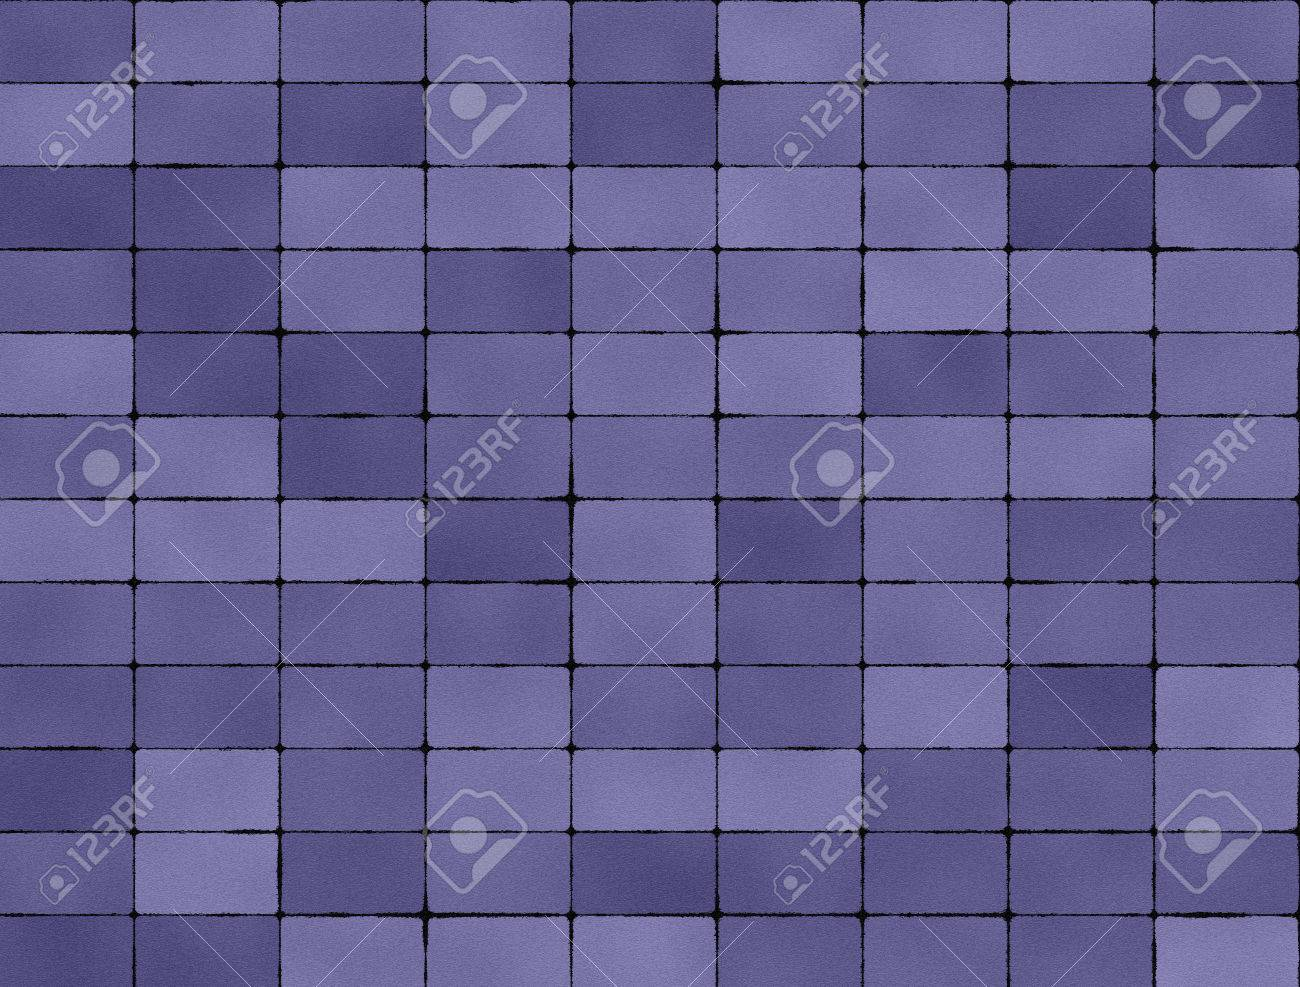 Seamless texture of purple tiles stock photo picture and royalty